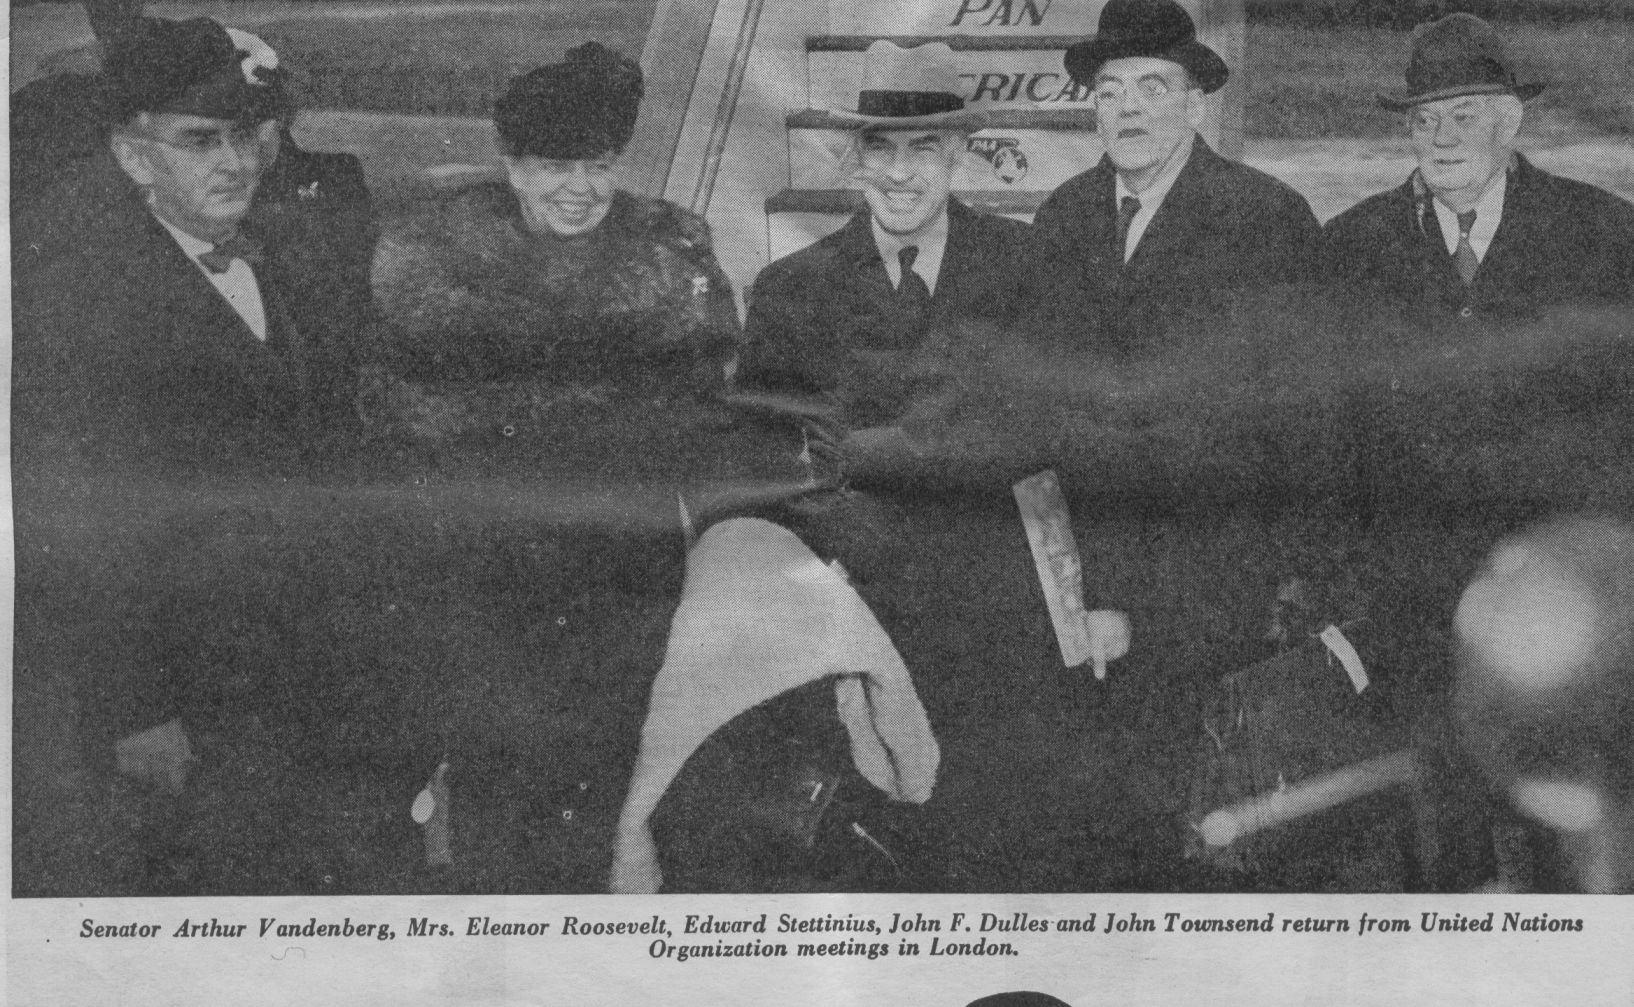 1946 Eleanor Roosevelt & party pose by Pan Am Clipper